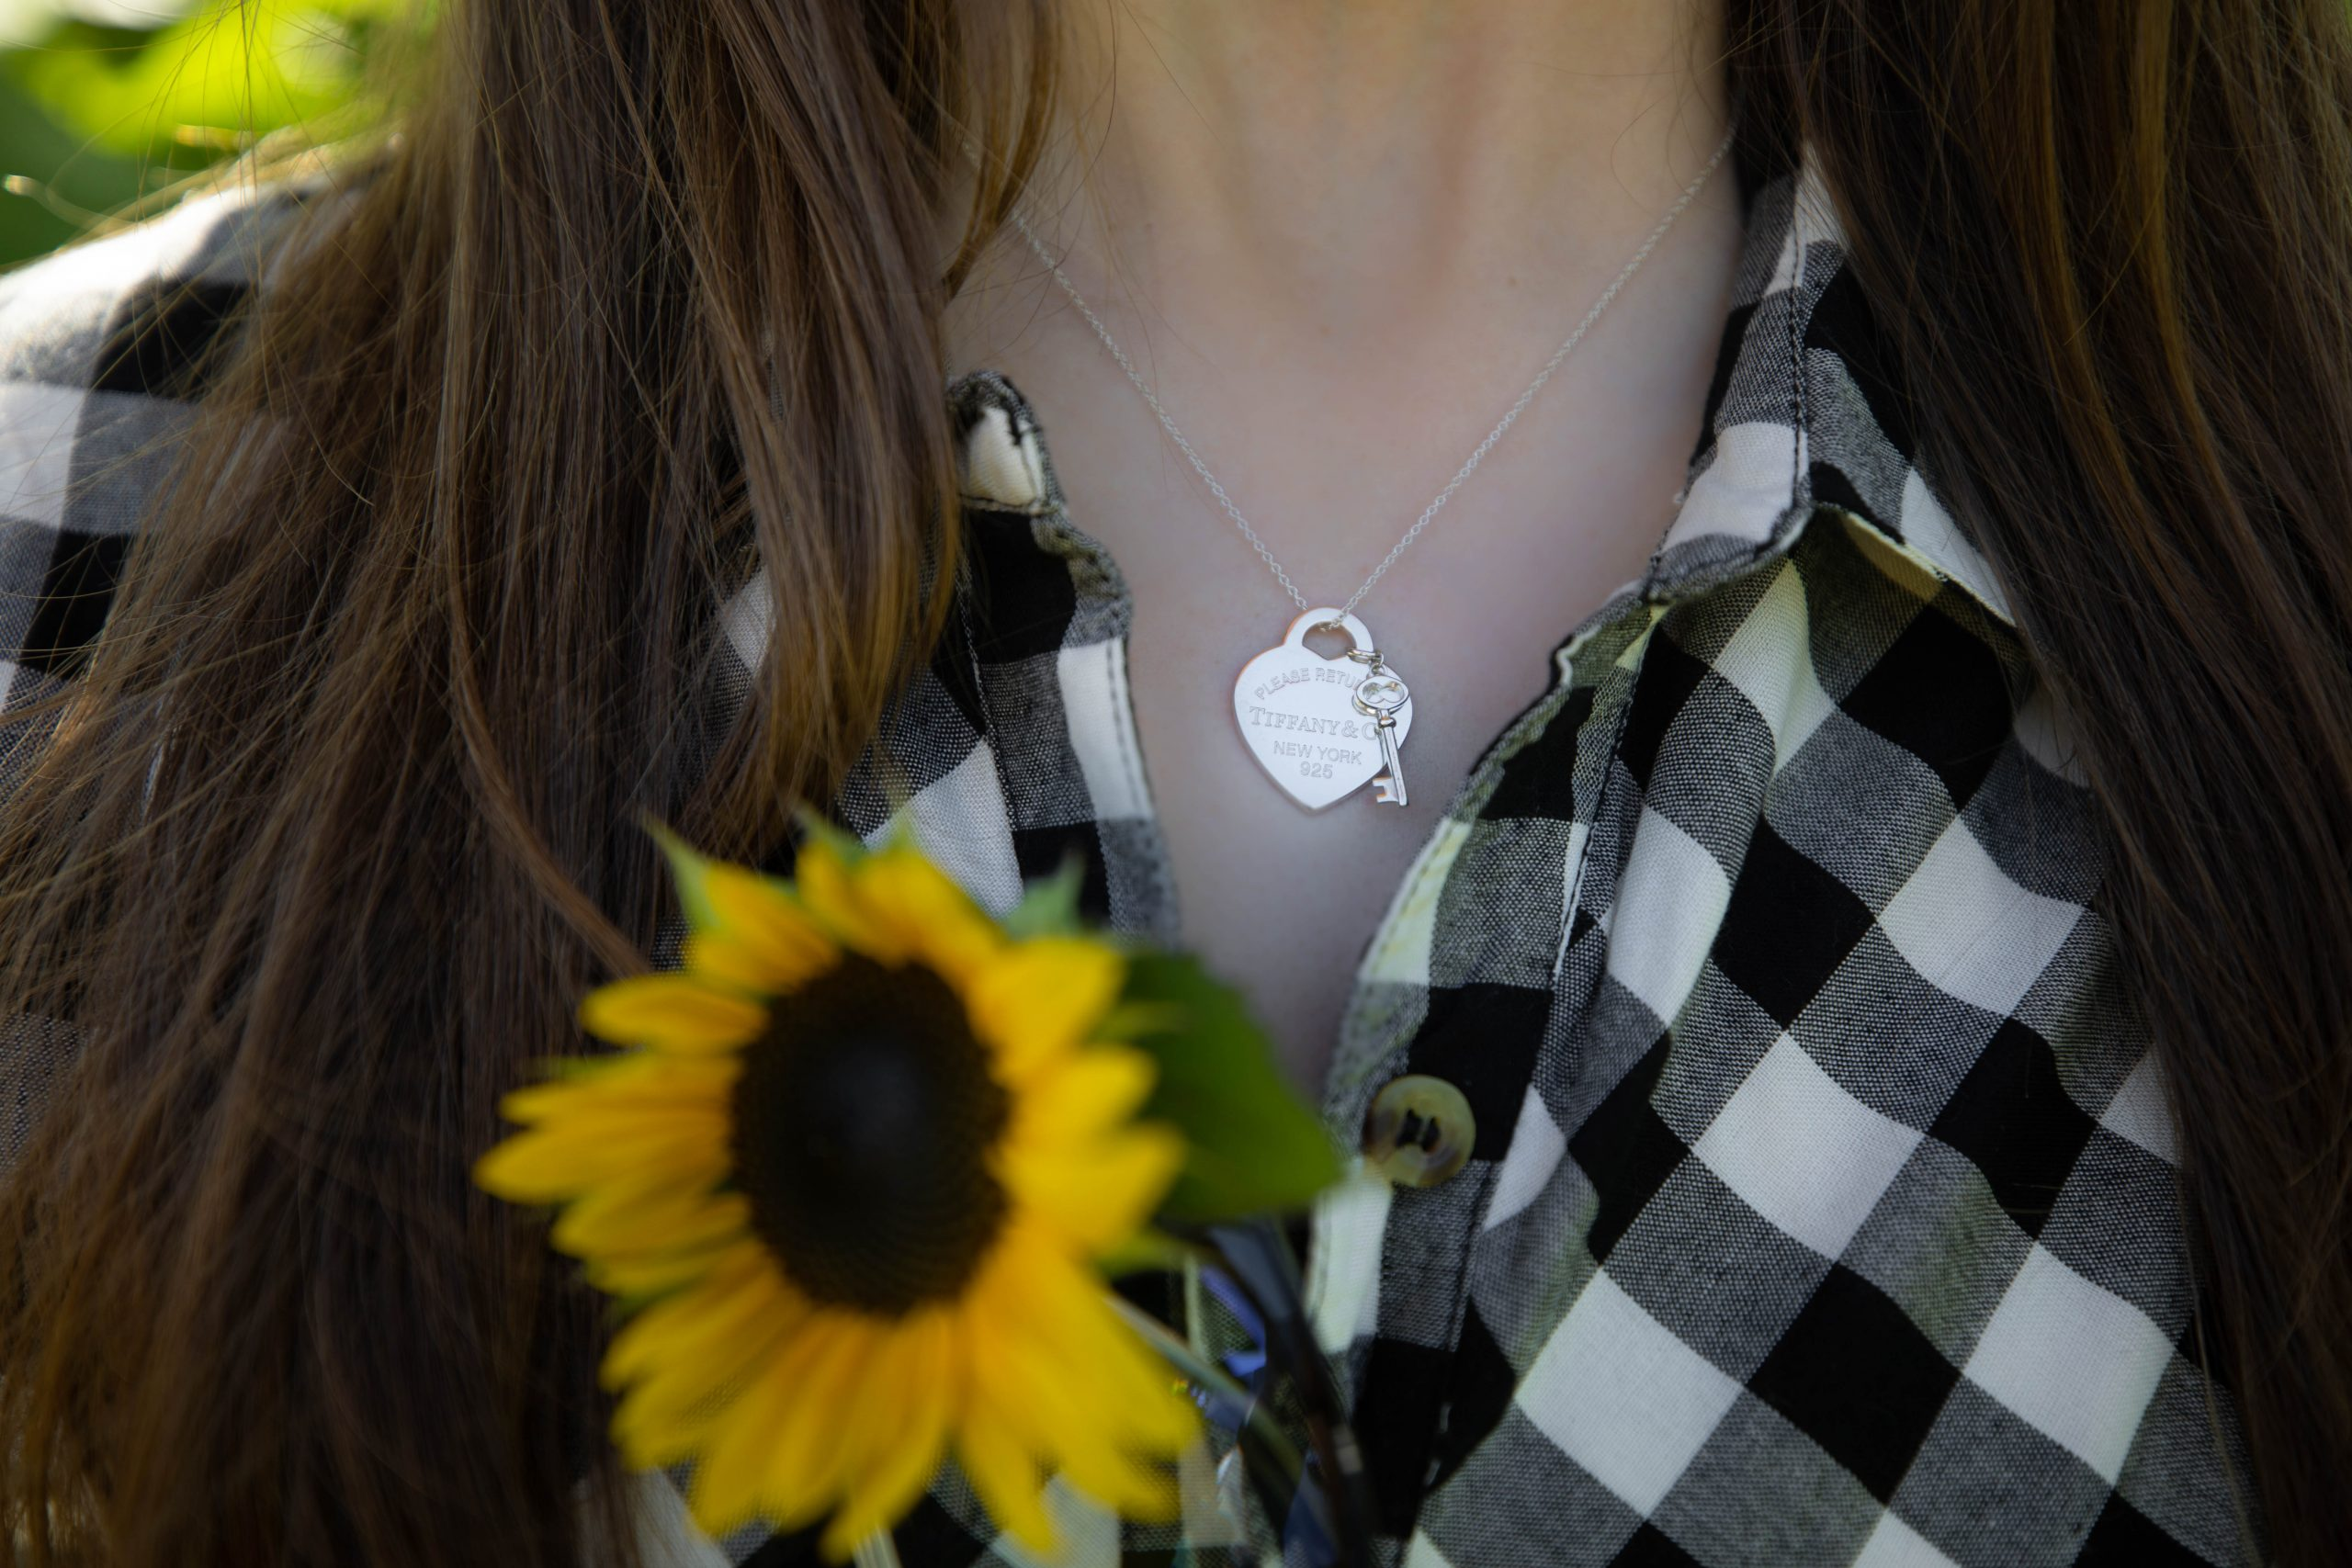 Sterling Silver Tiffany & Co Heart and Key Tag Necklace Sunflower Fields at DeBucks Sunflower U-Pick Farm in Belleville, Michigan Photographed by Annie Fairfax